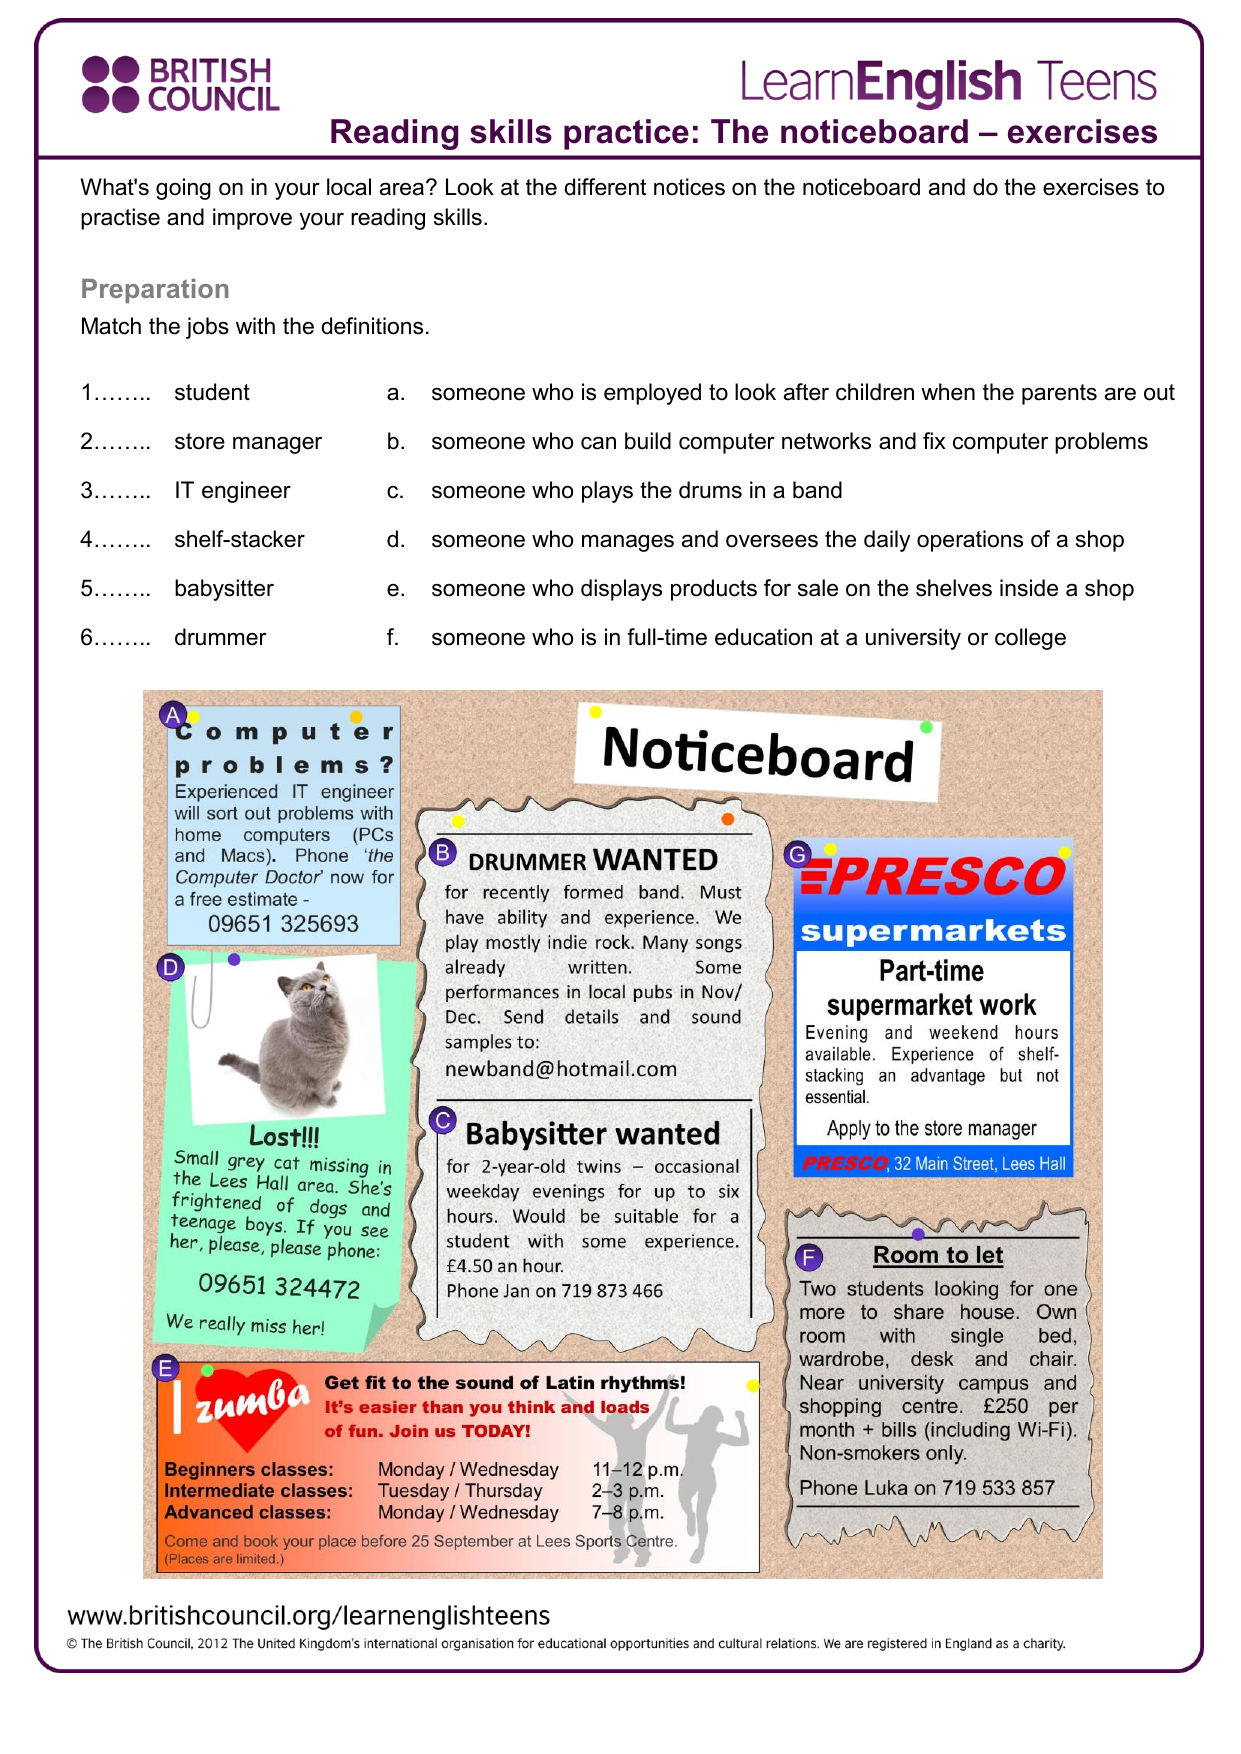 - The Noticeboard - Exercises 2